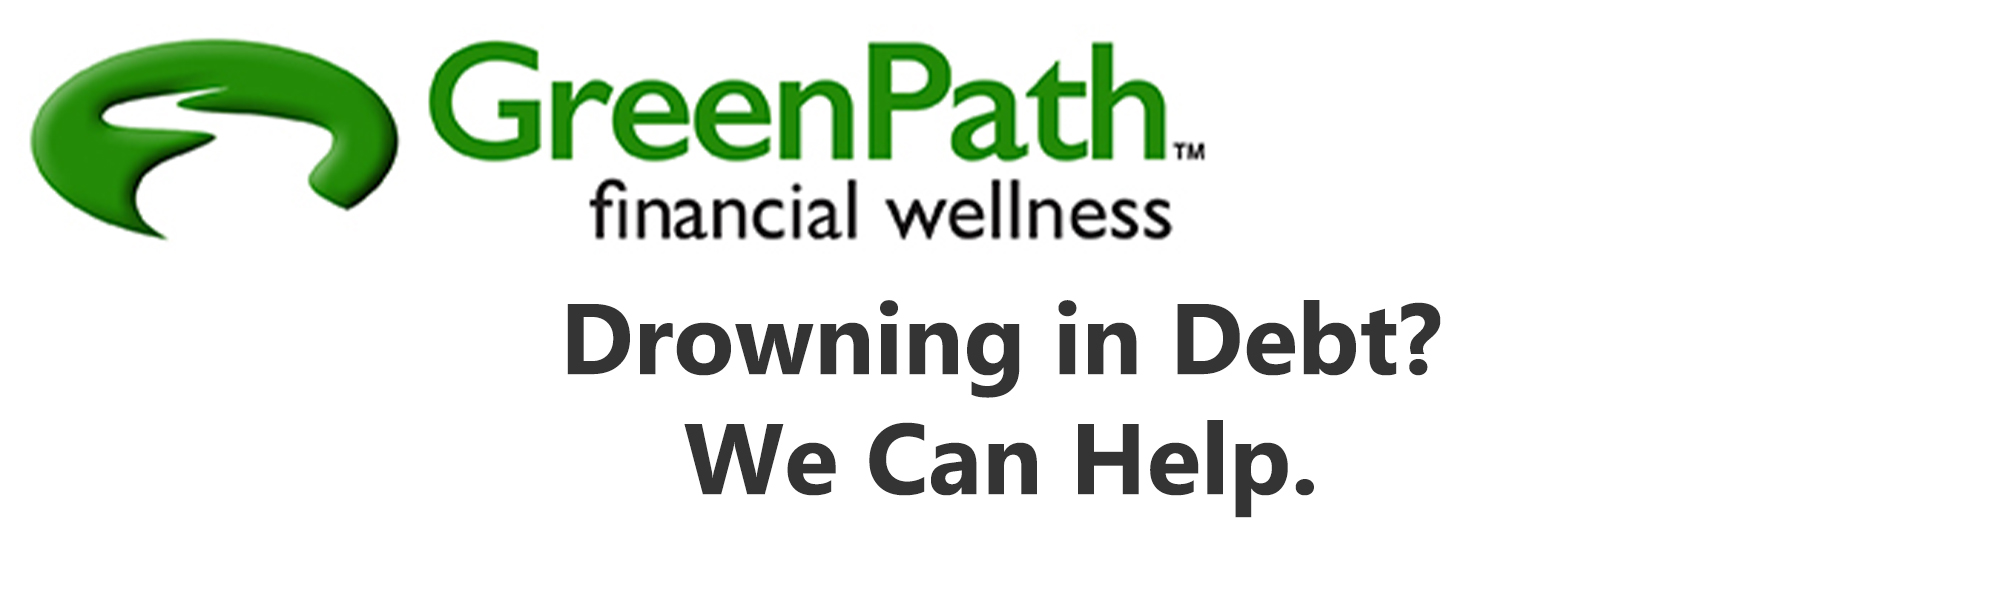 Drowning in Debt? We can Help.